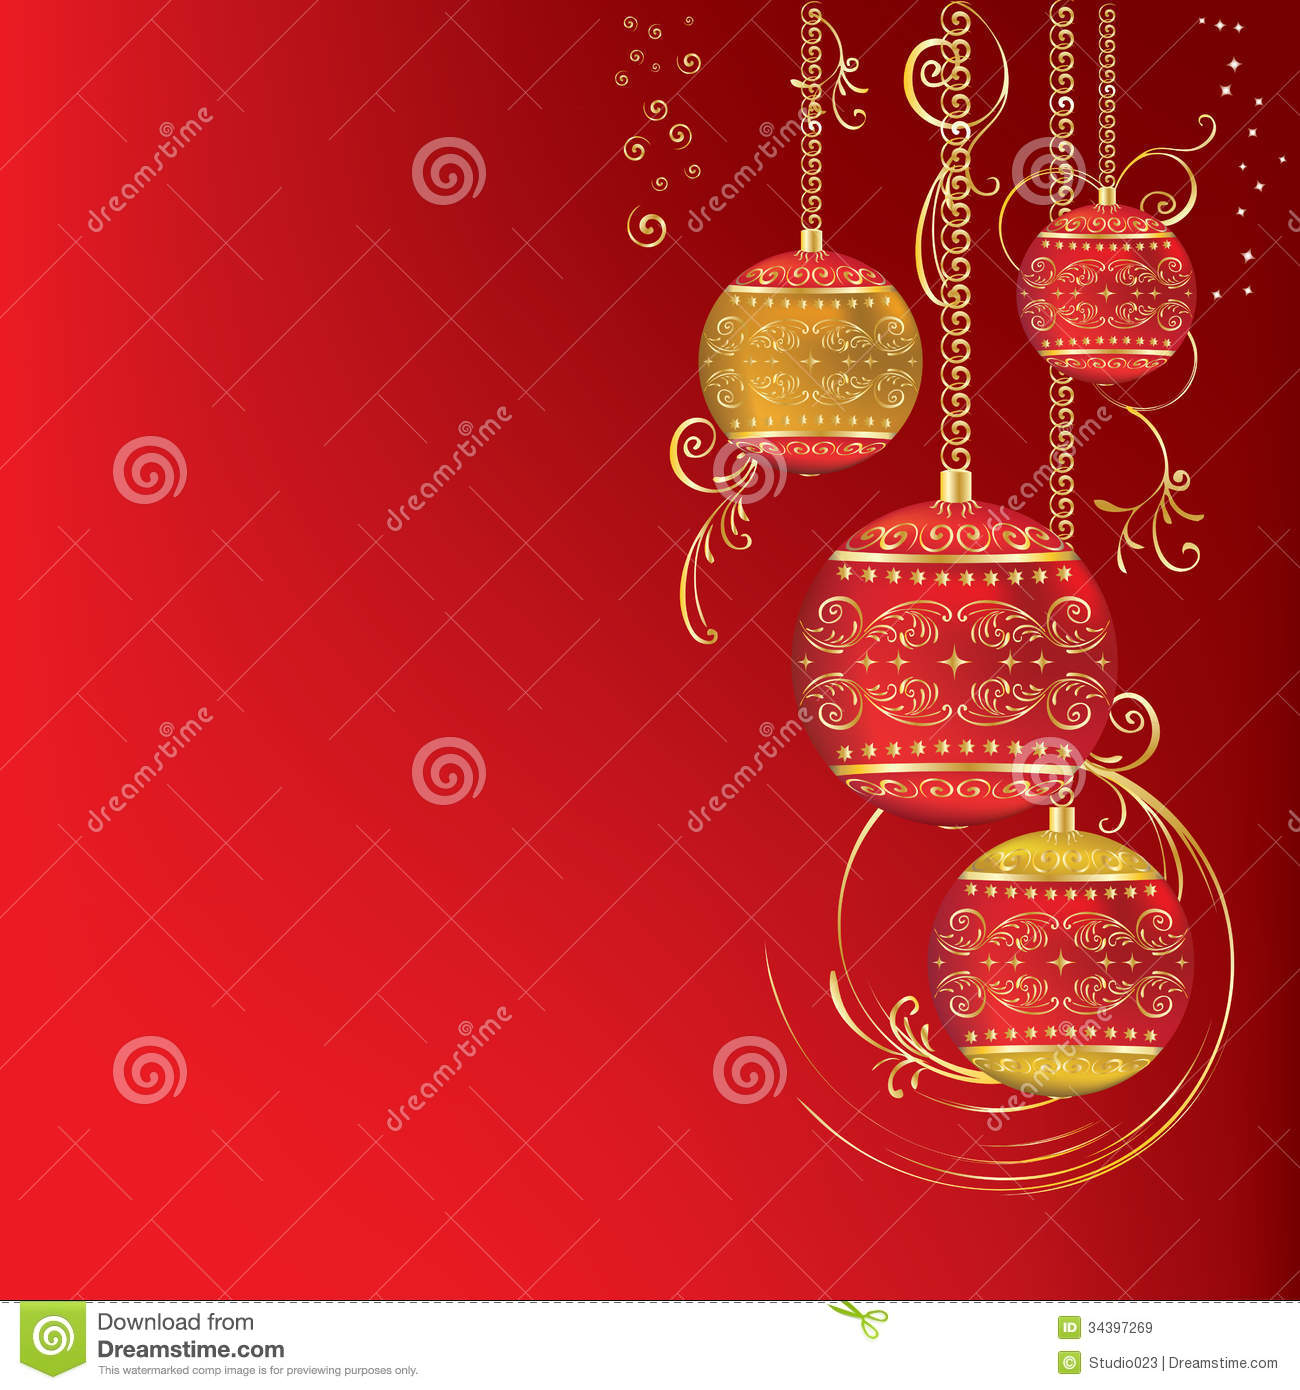 Red And Gold Christmas Ornament Stock Vector